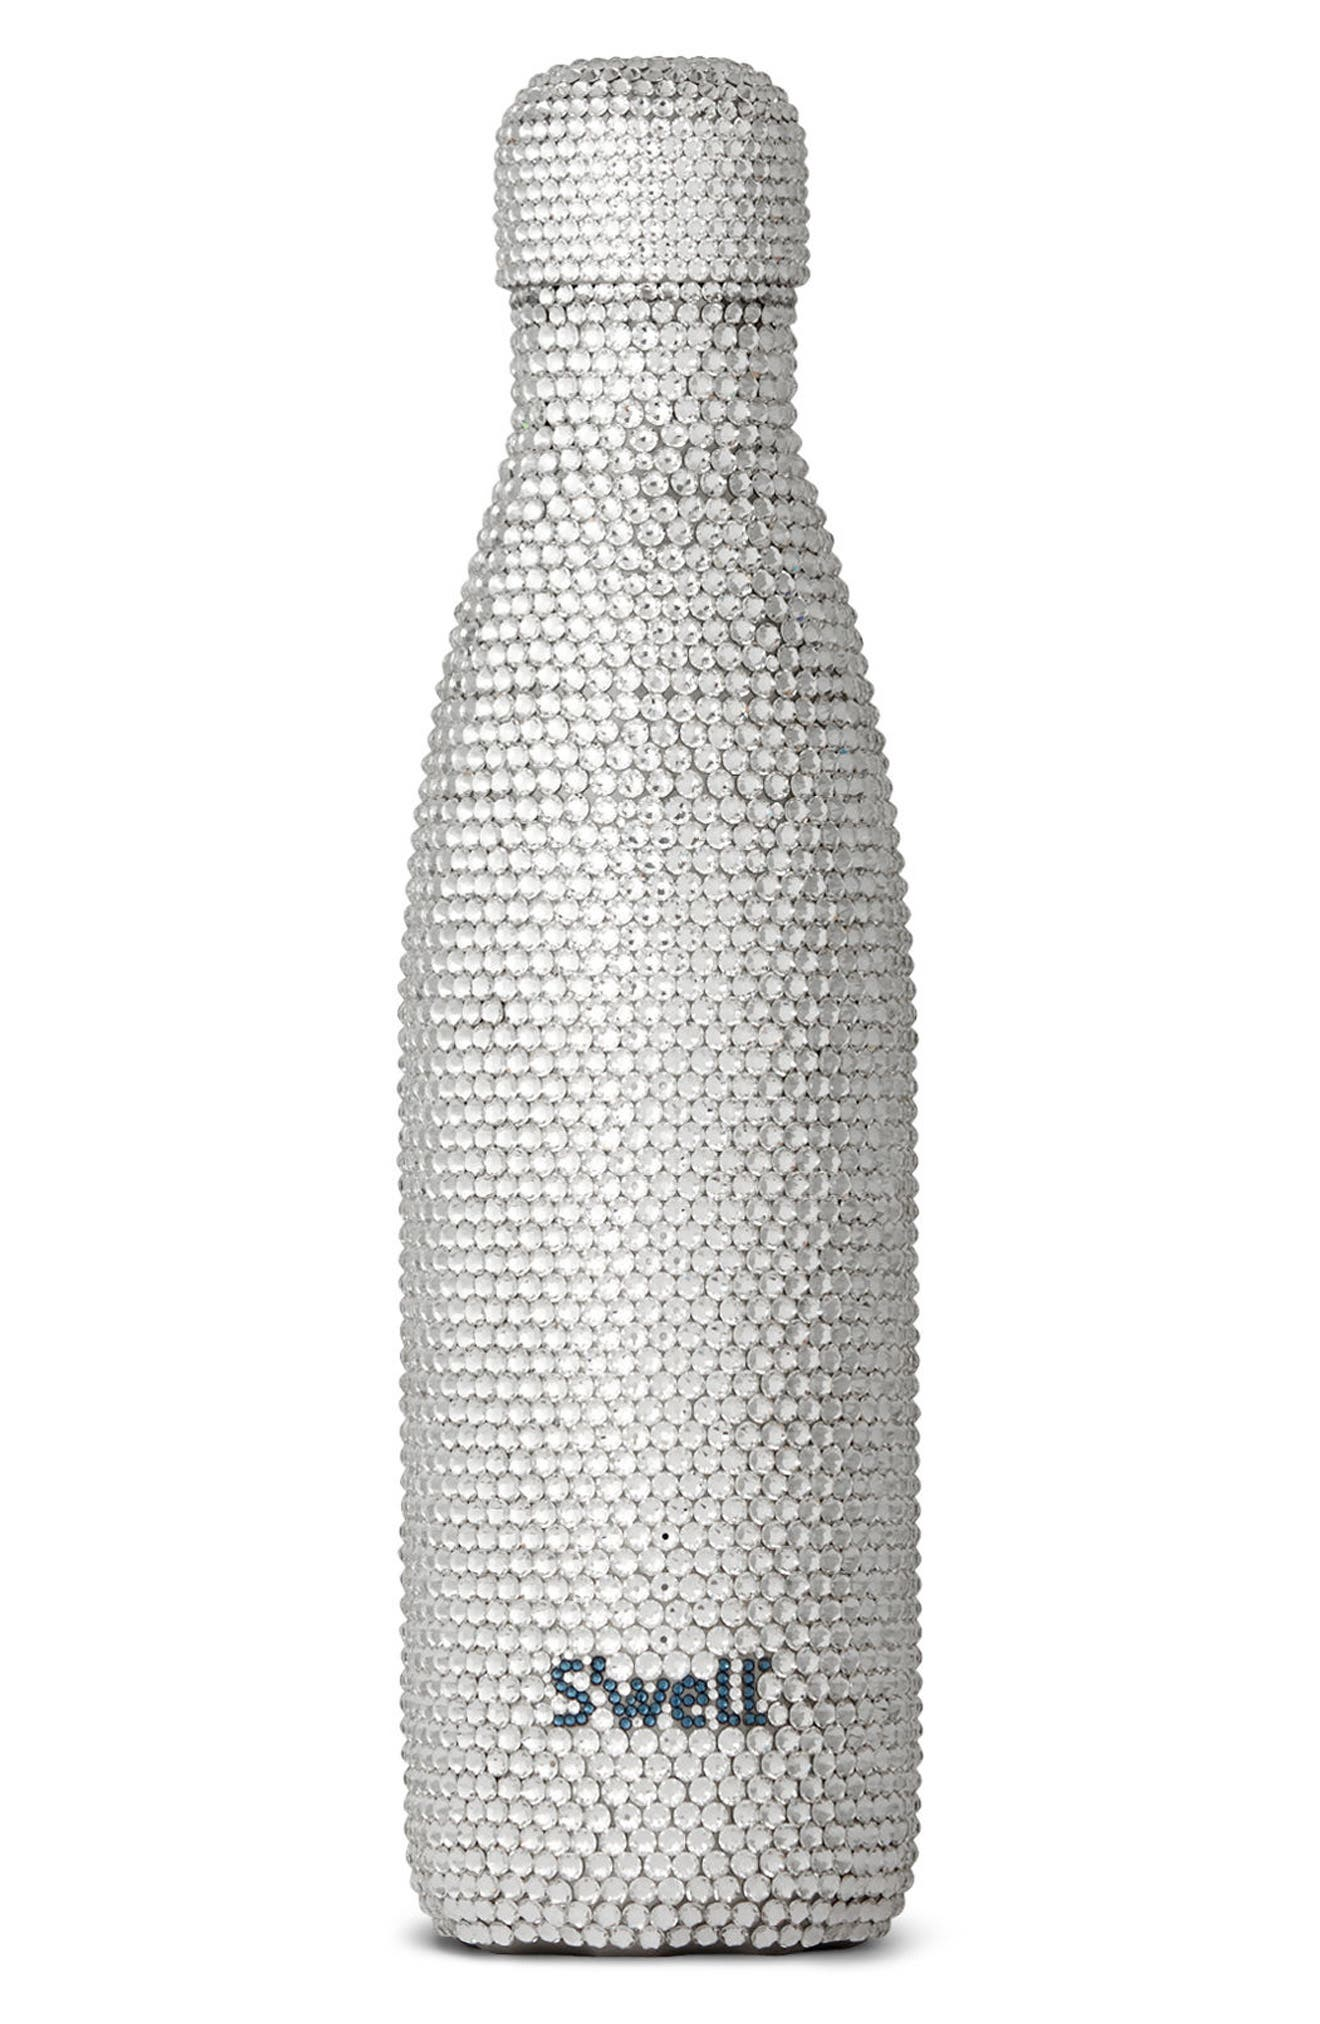 S'well Alina Swarovski Crystal Insulated Stainless Steel Water Bottle (Limited Edition)